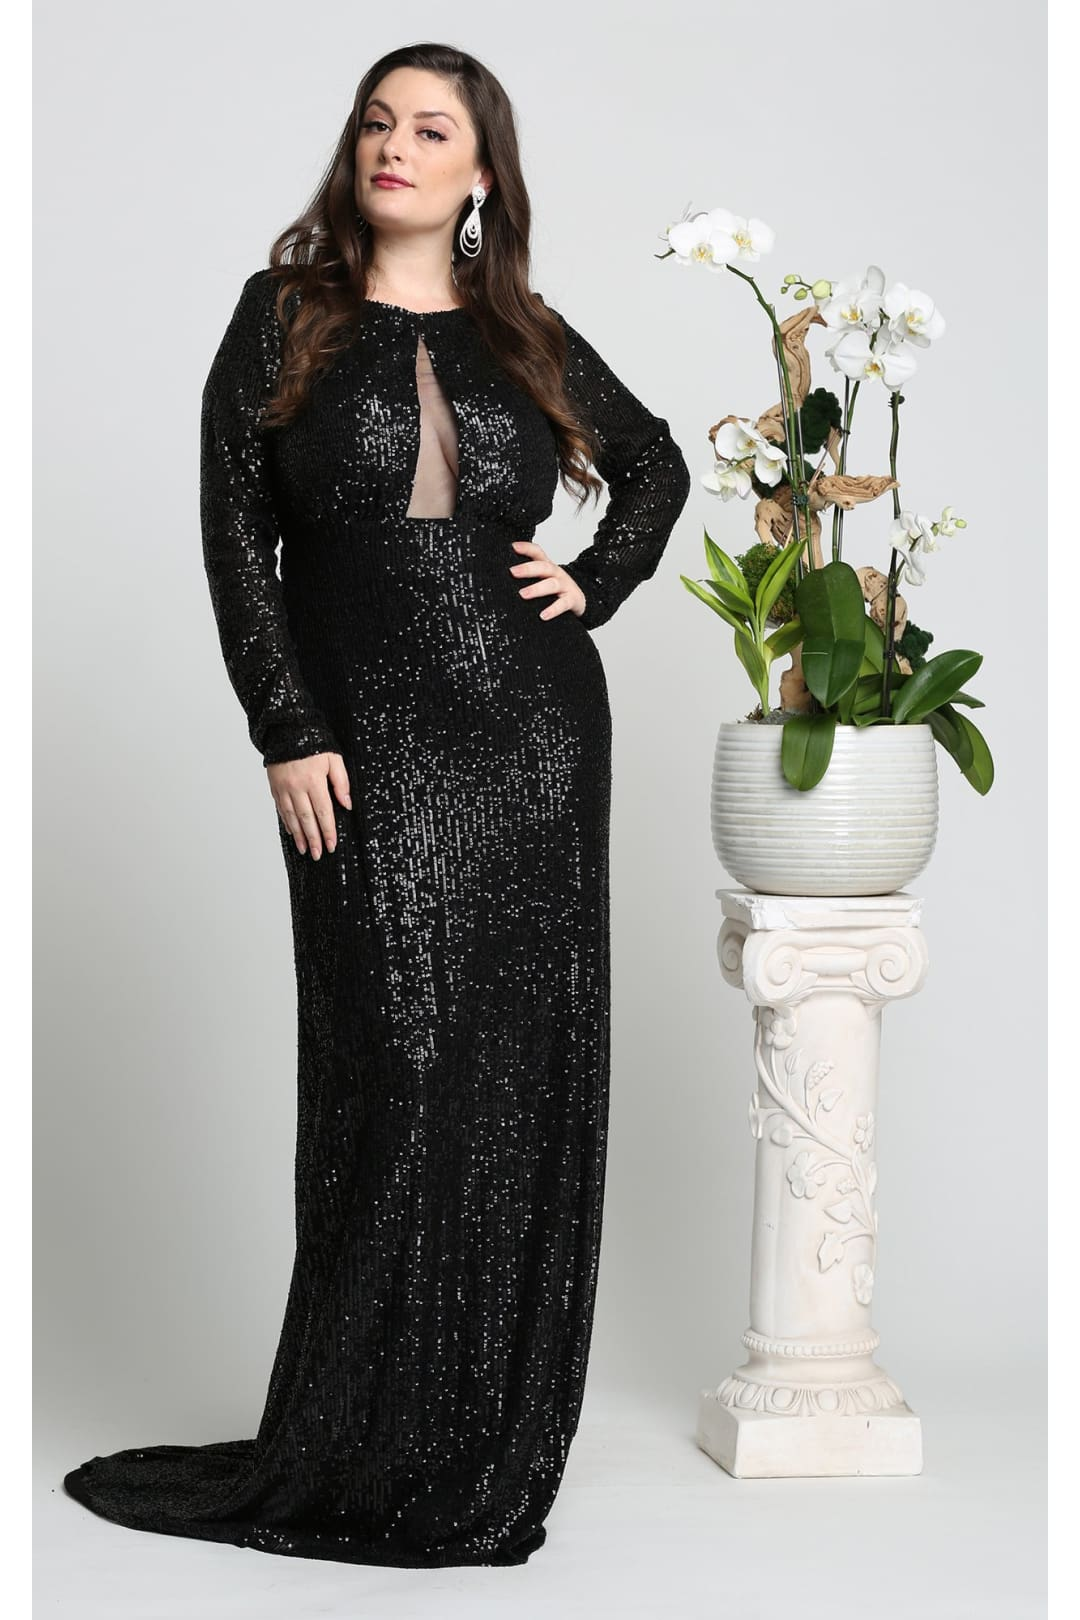 Red Carpet Sequined Formal Dress